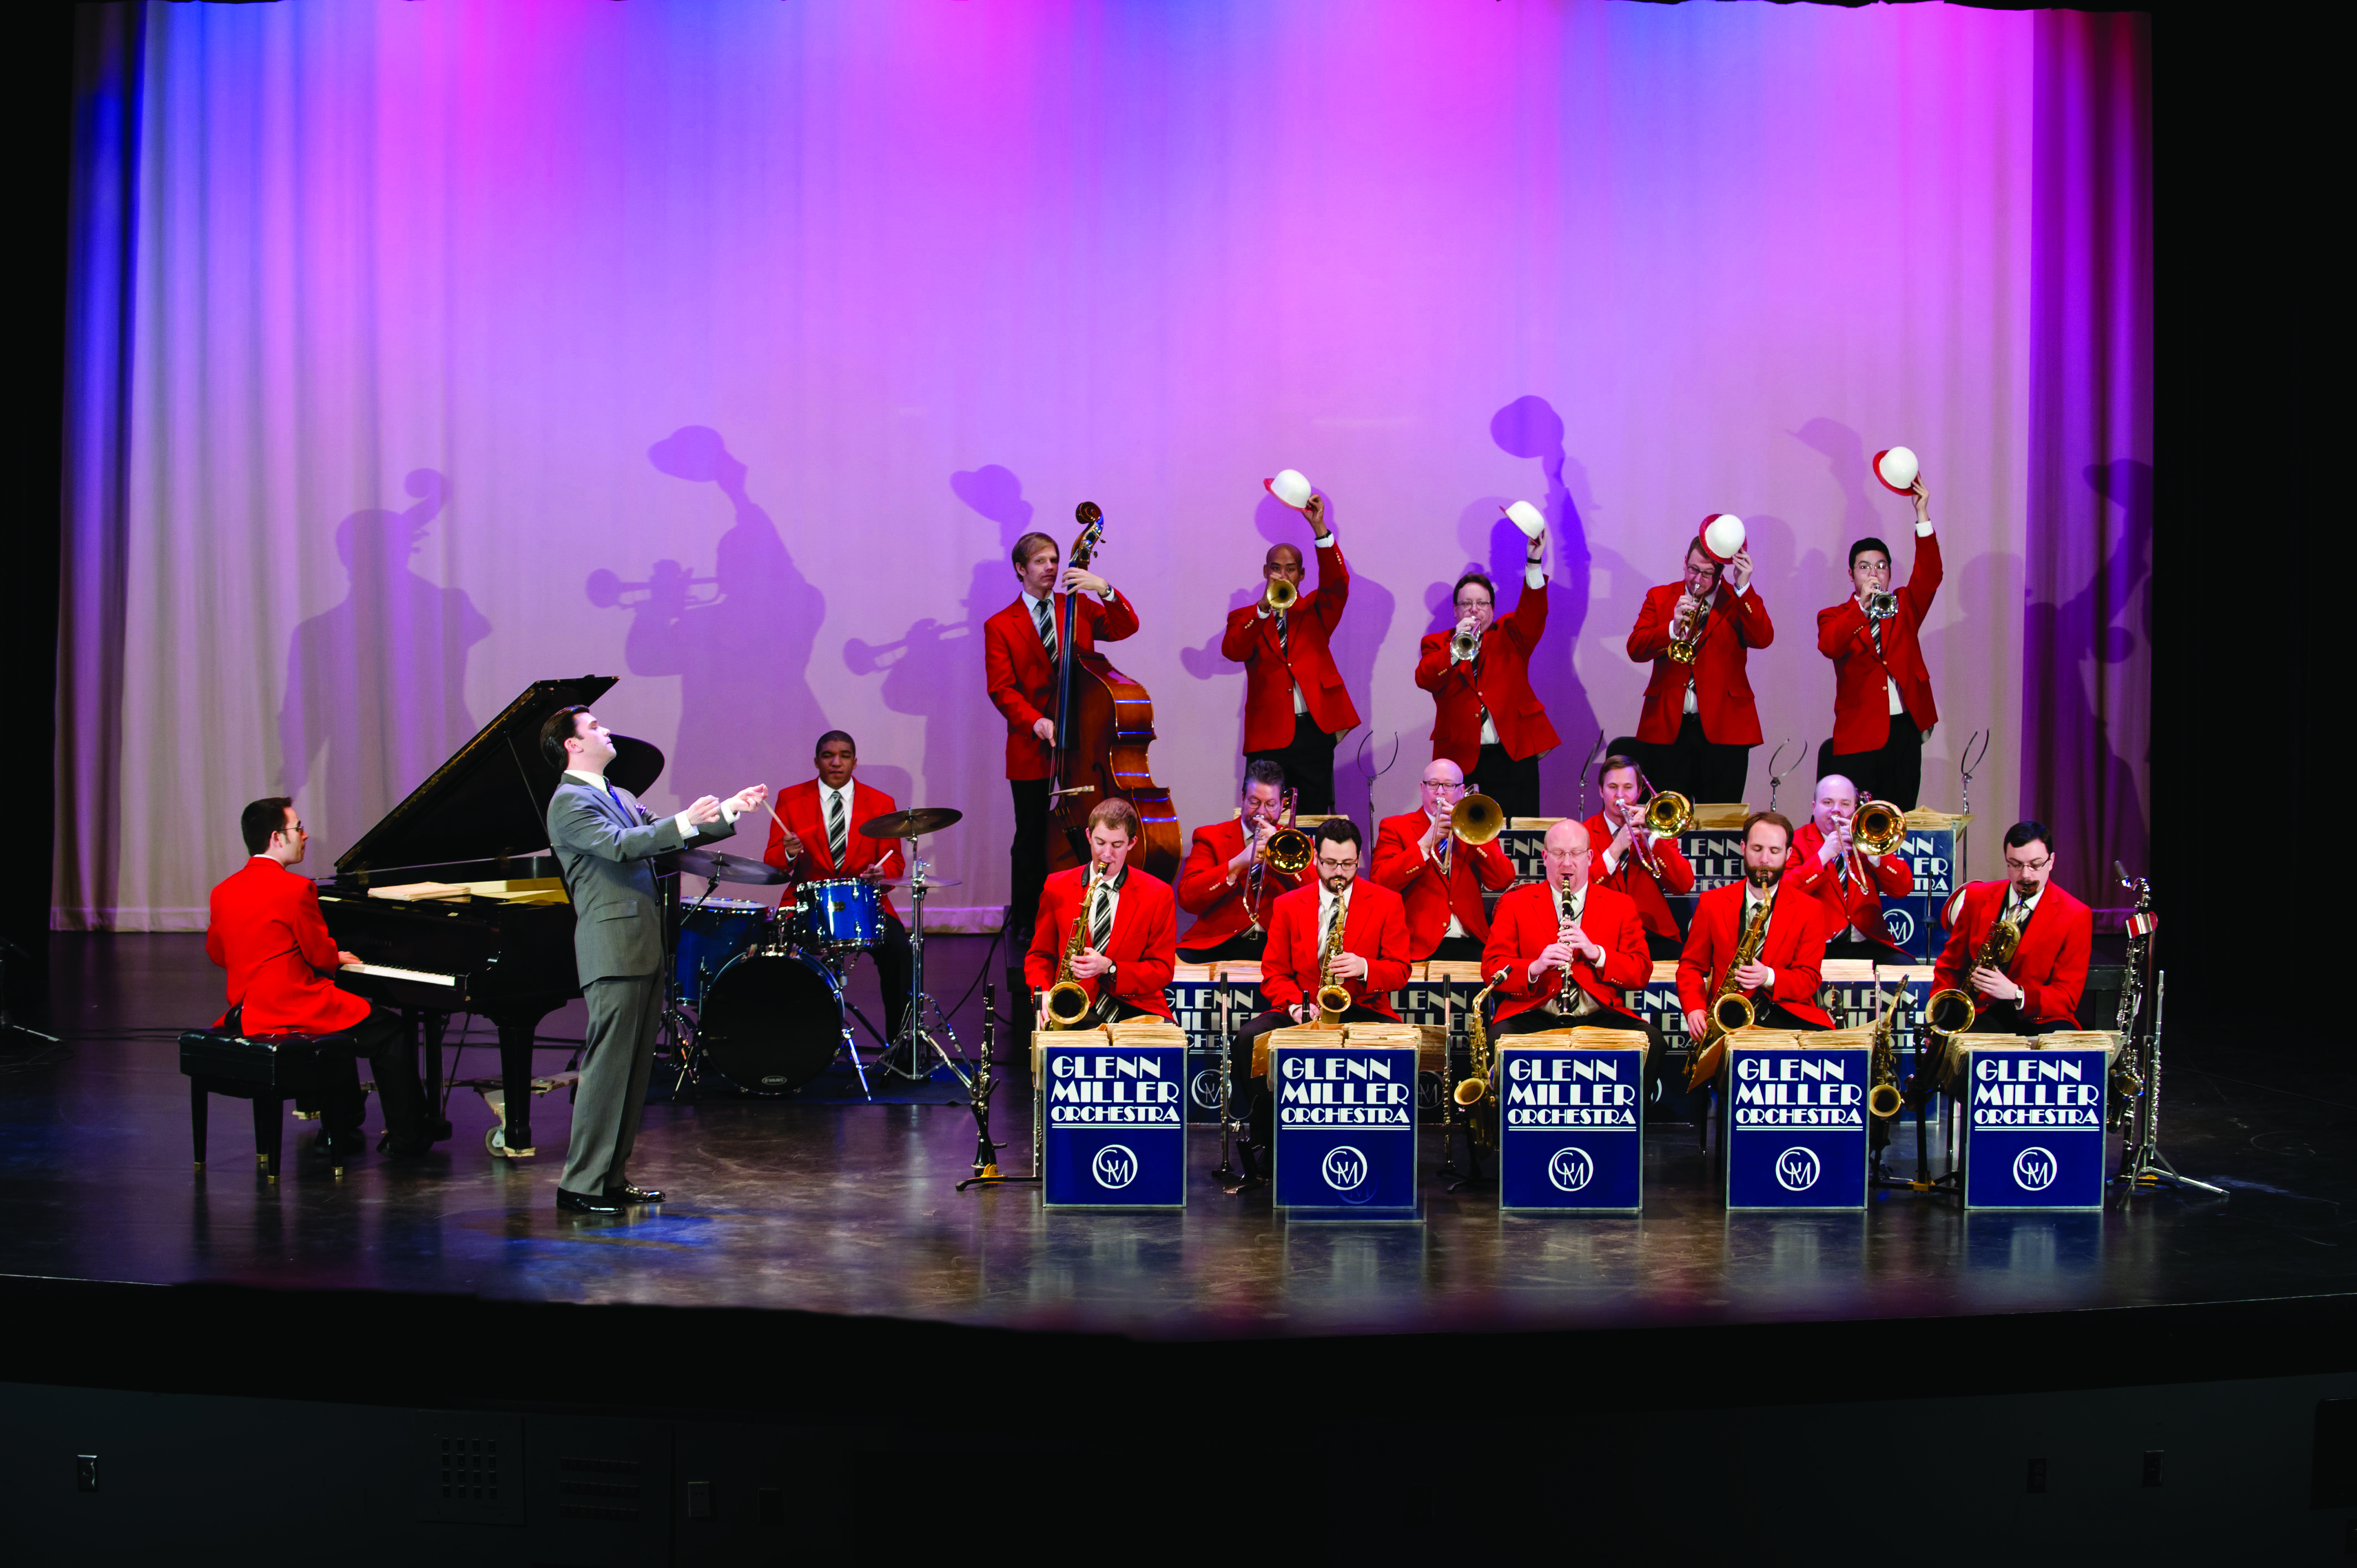 Glenn Miller Orchestra to swing into the LiedGlenn Miller Orchestra